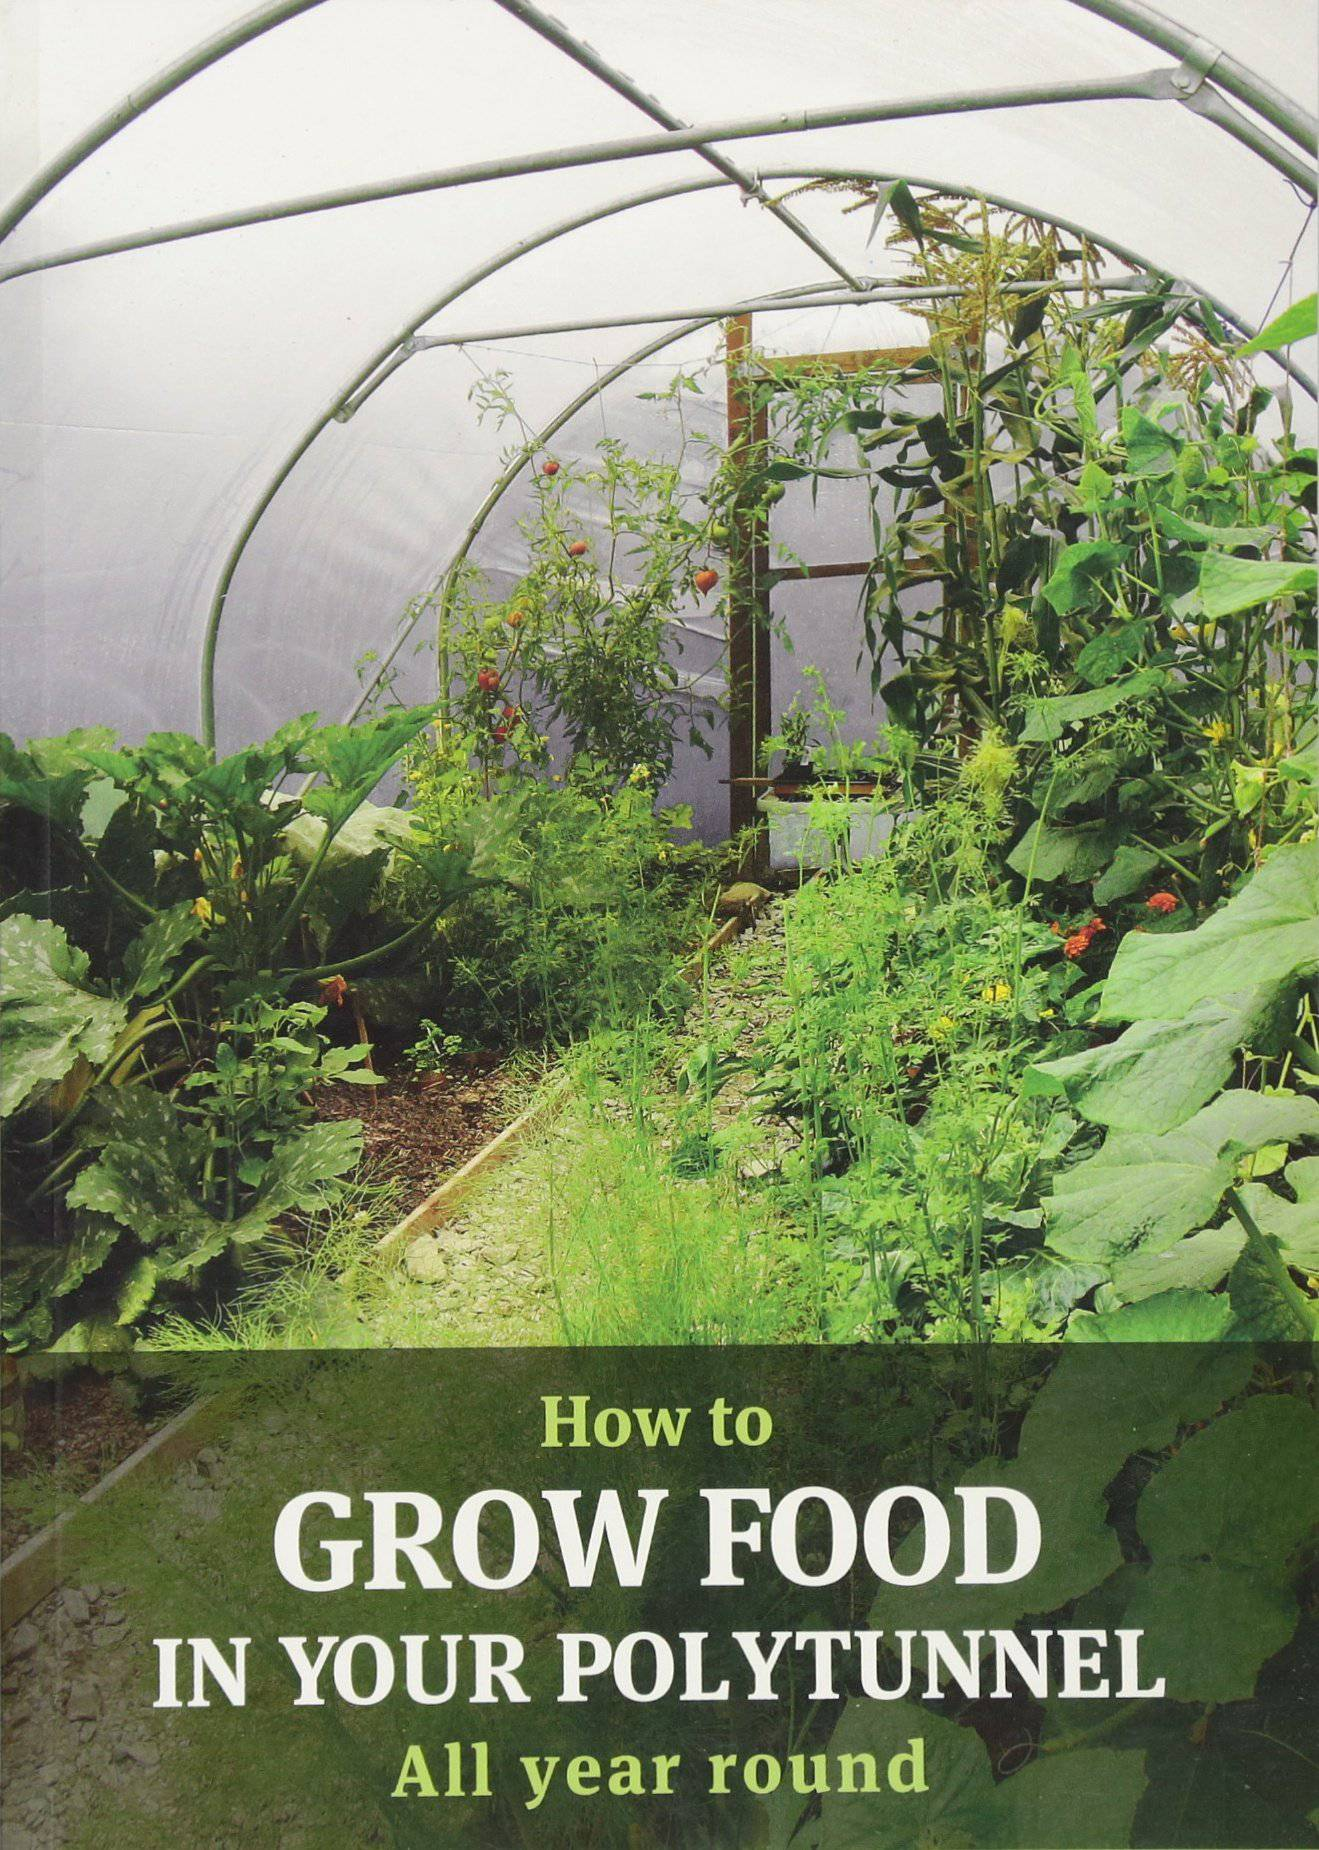 How to grow food in your polytunnel all year round by Mark Gatter & Andy McKee